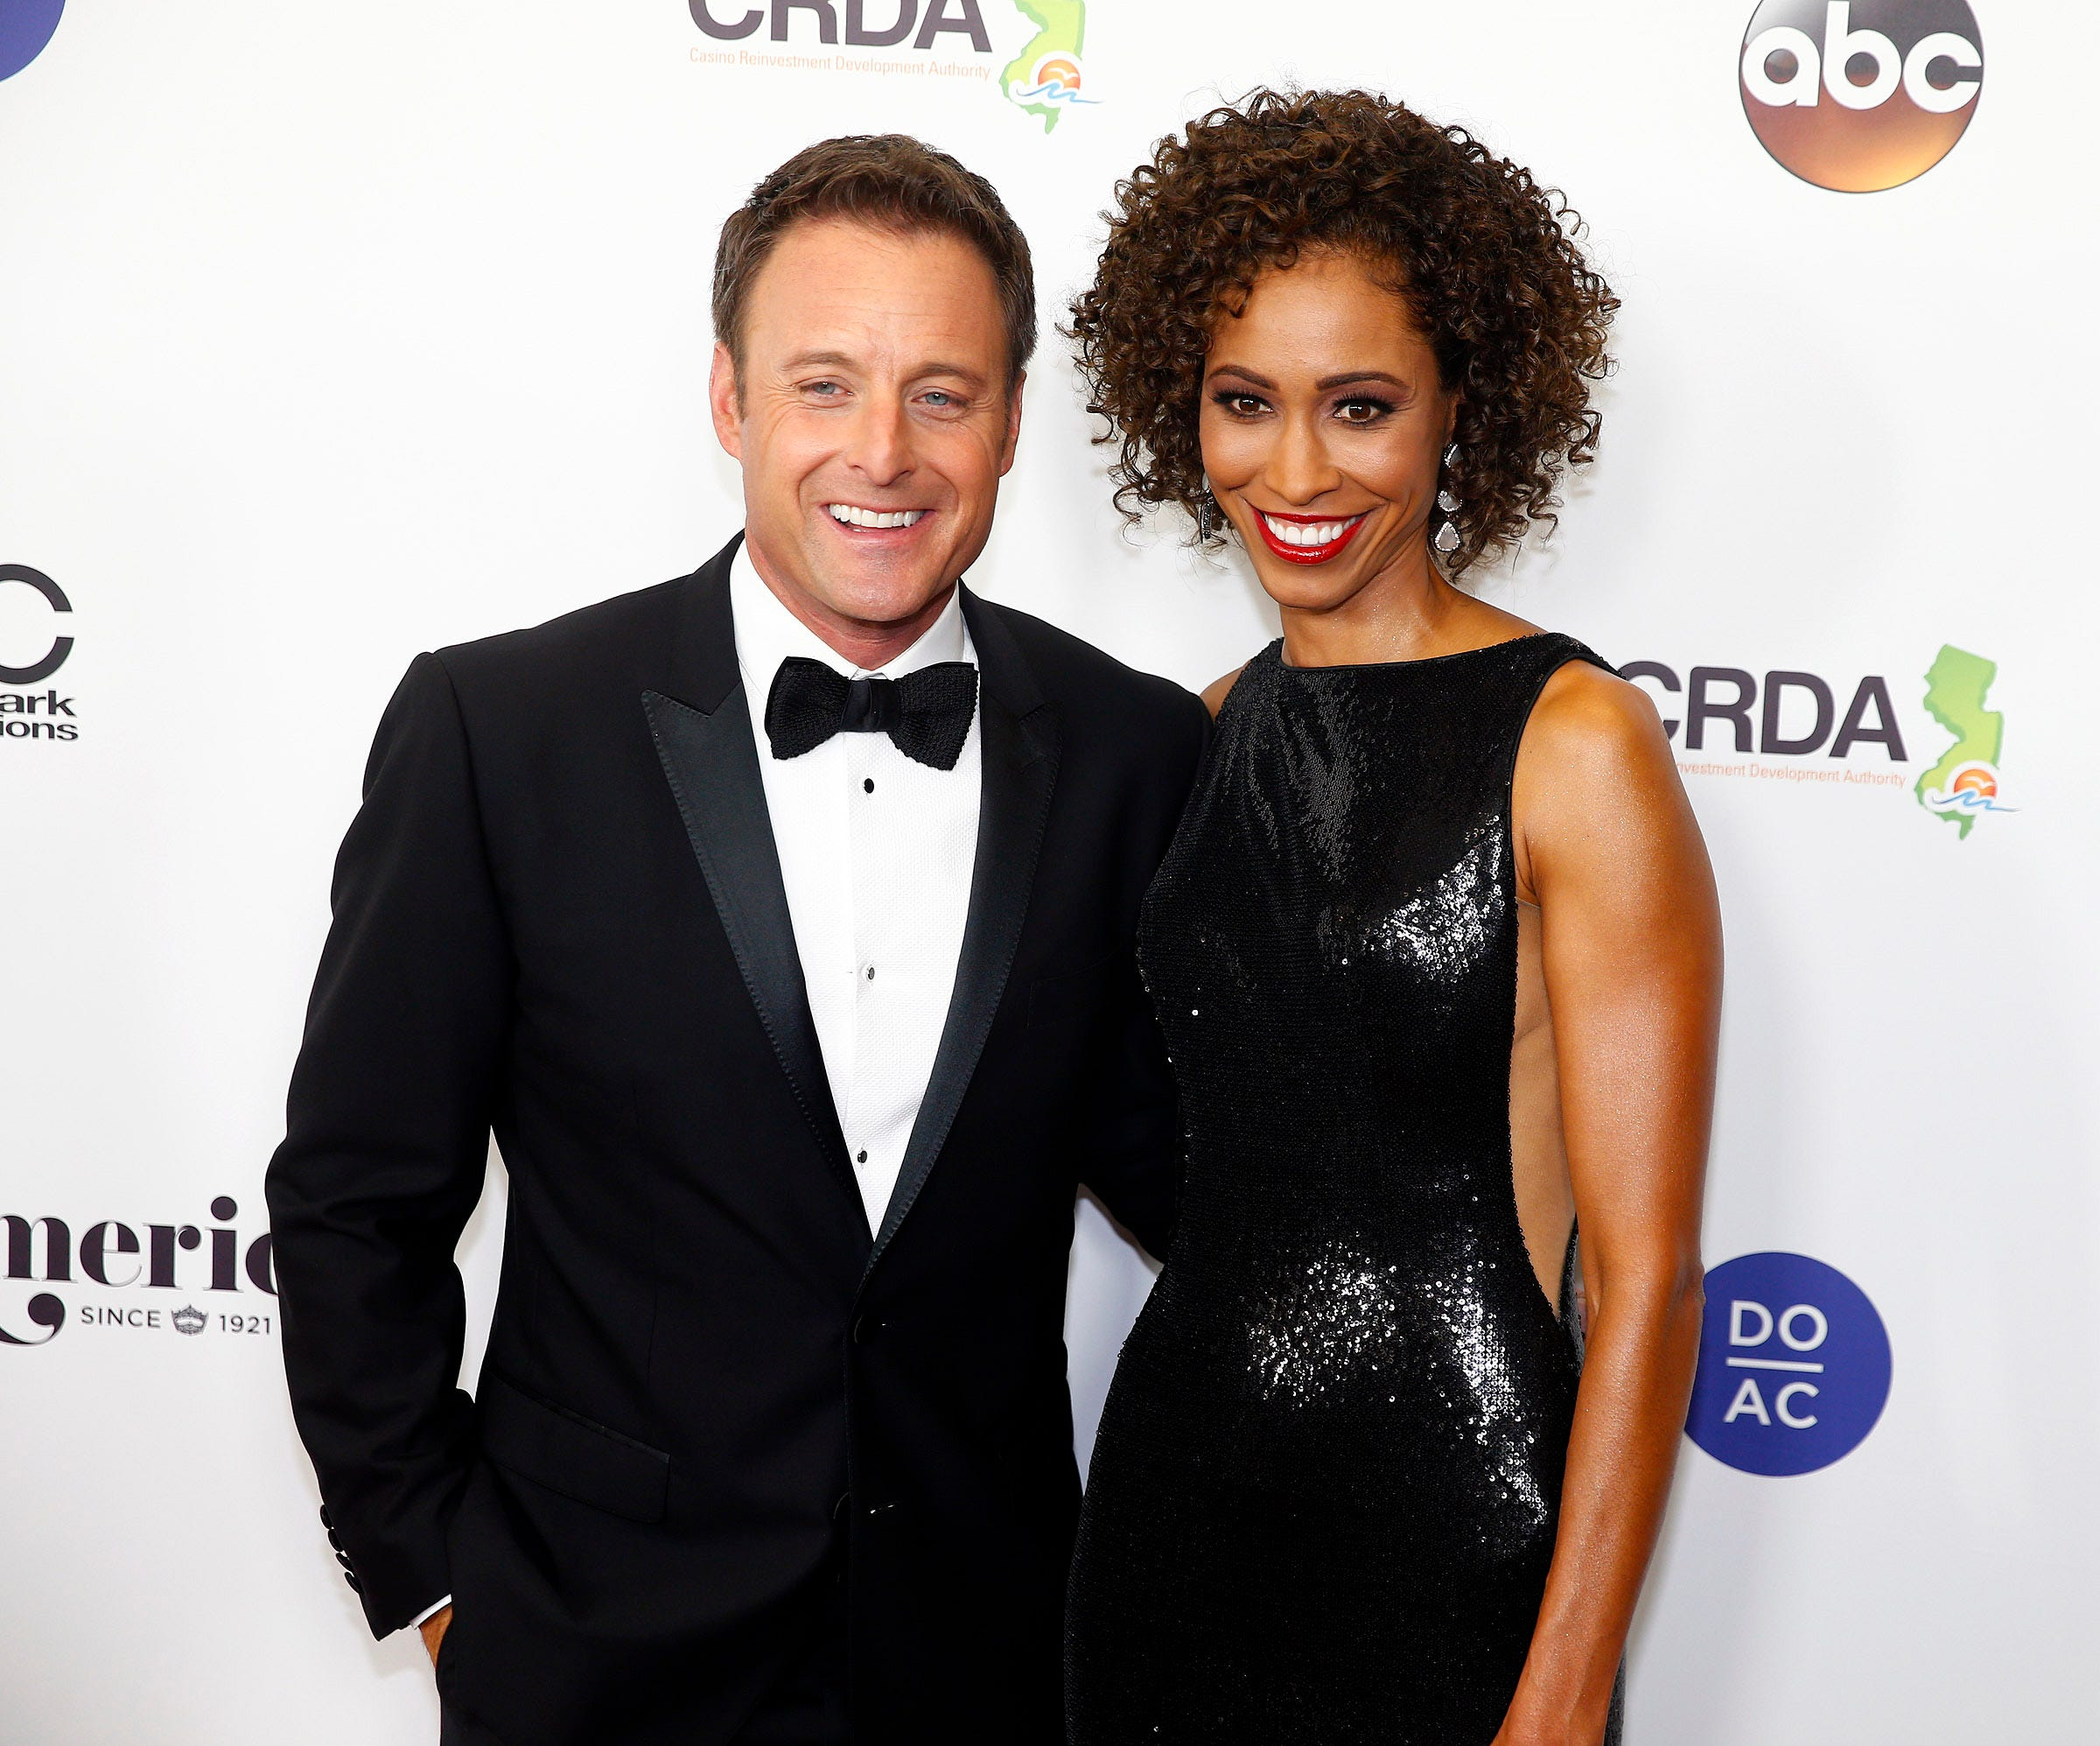 Host Chris Harrison speaks out on 'Bachelor in Paradise' controversy